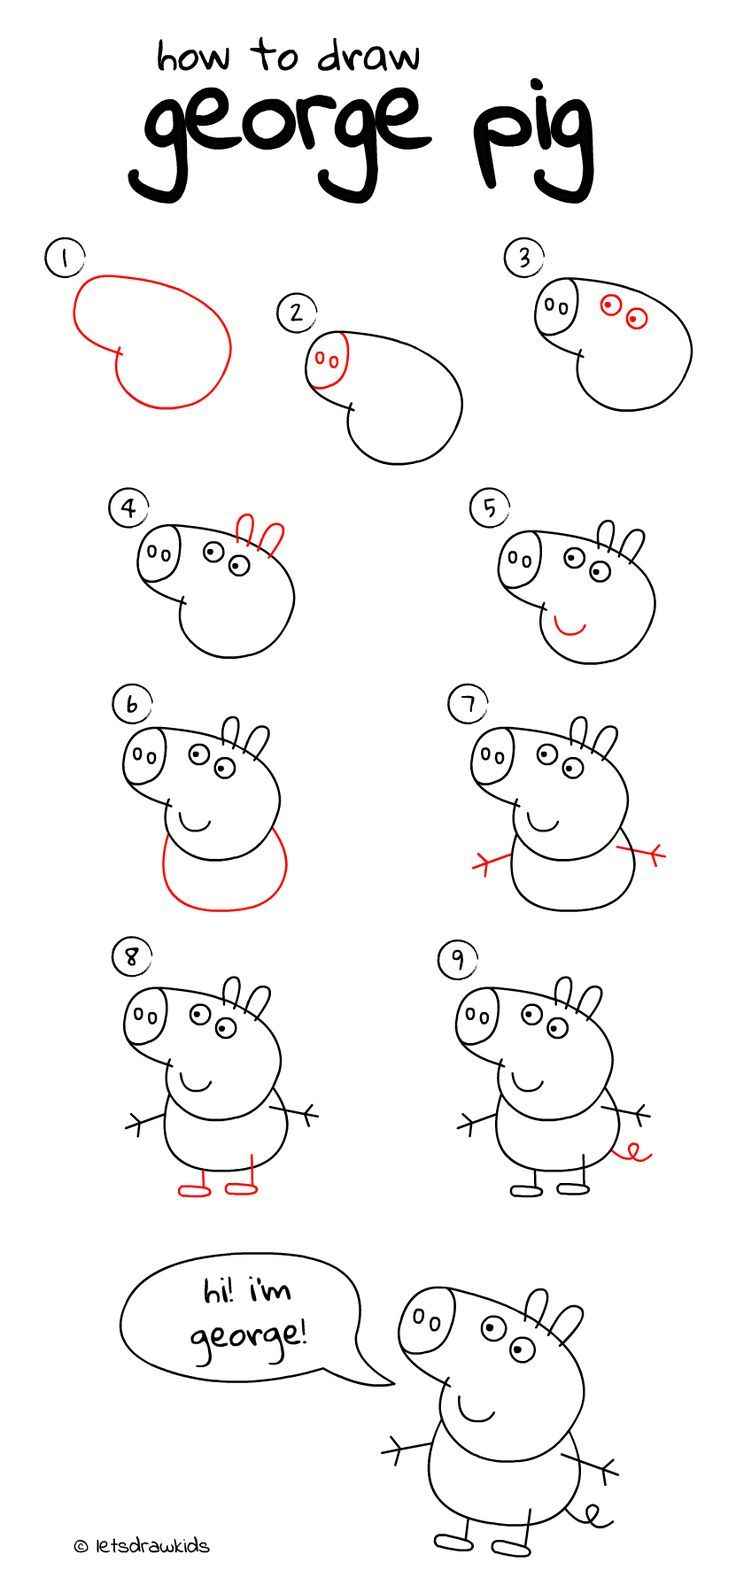 Design to draw draw pattern how to draw george pig easy drawing step by step perfect for kids lets draw draw pattern inspiration preview